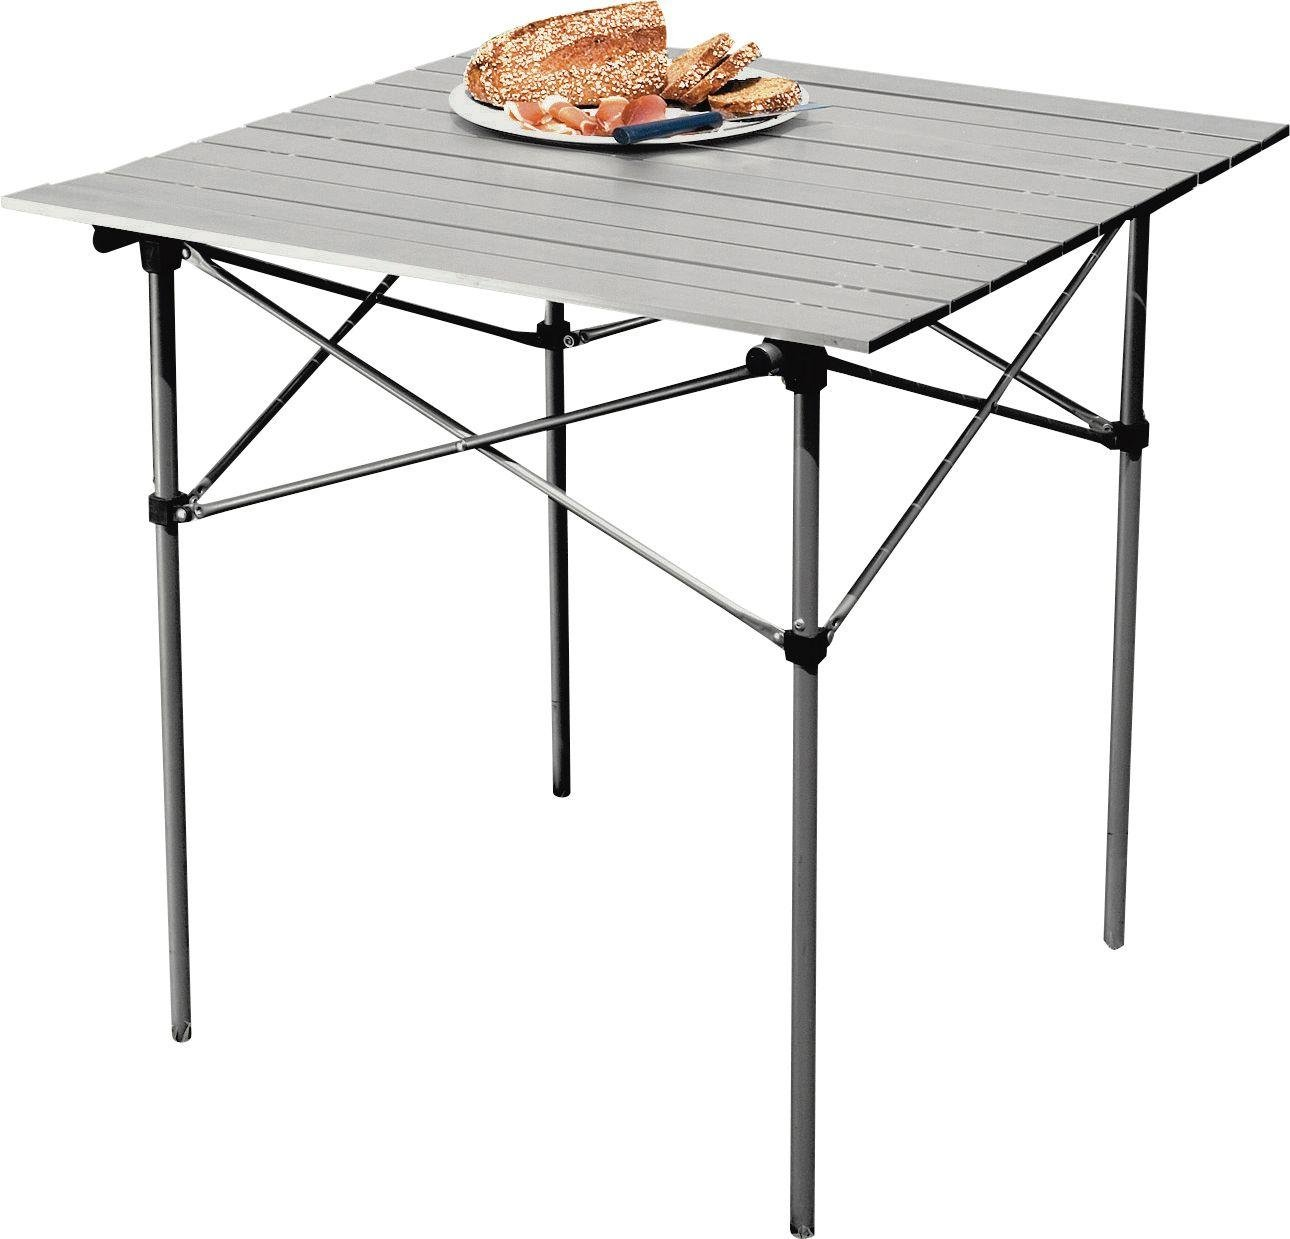 aluminium folding camping table with